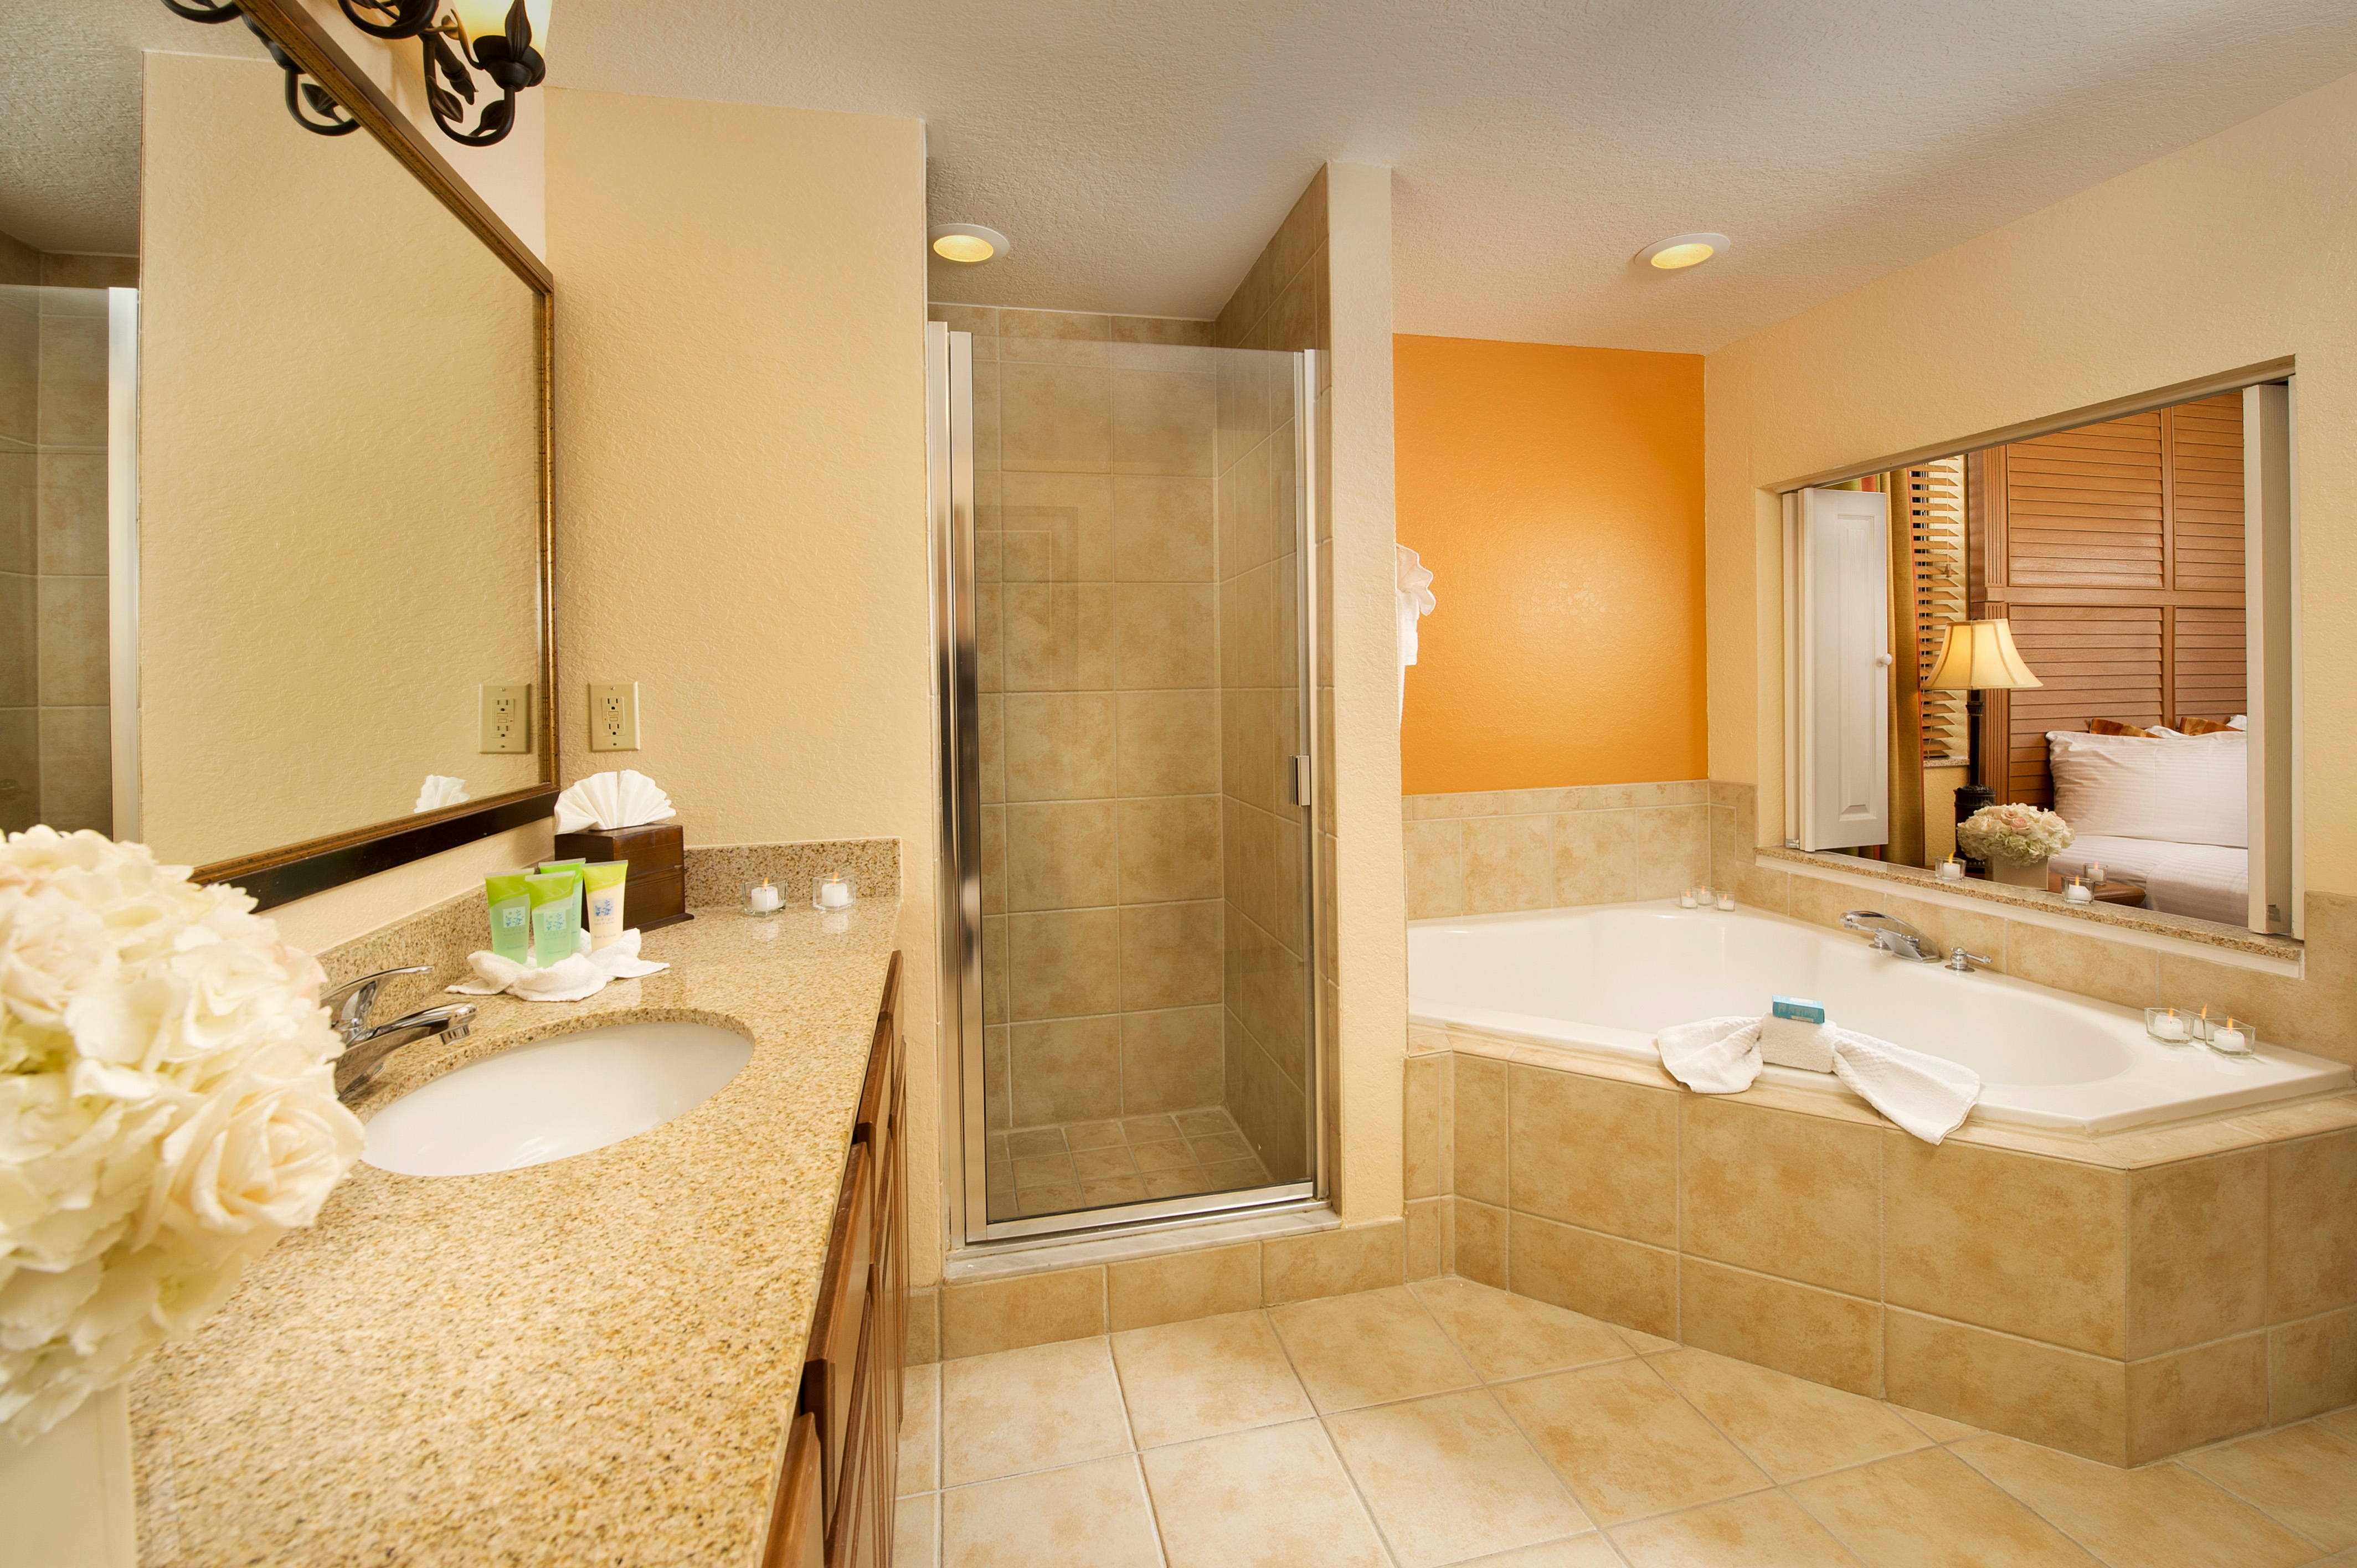 2 bedroom suites in florida%0A A   Night Stay In   Bedroom Suite At The Floriday S Orlando